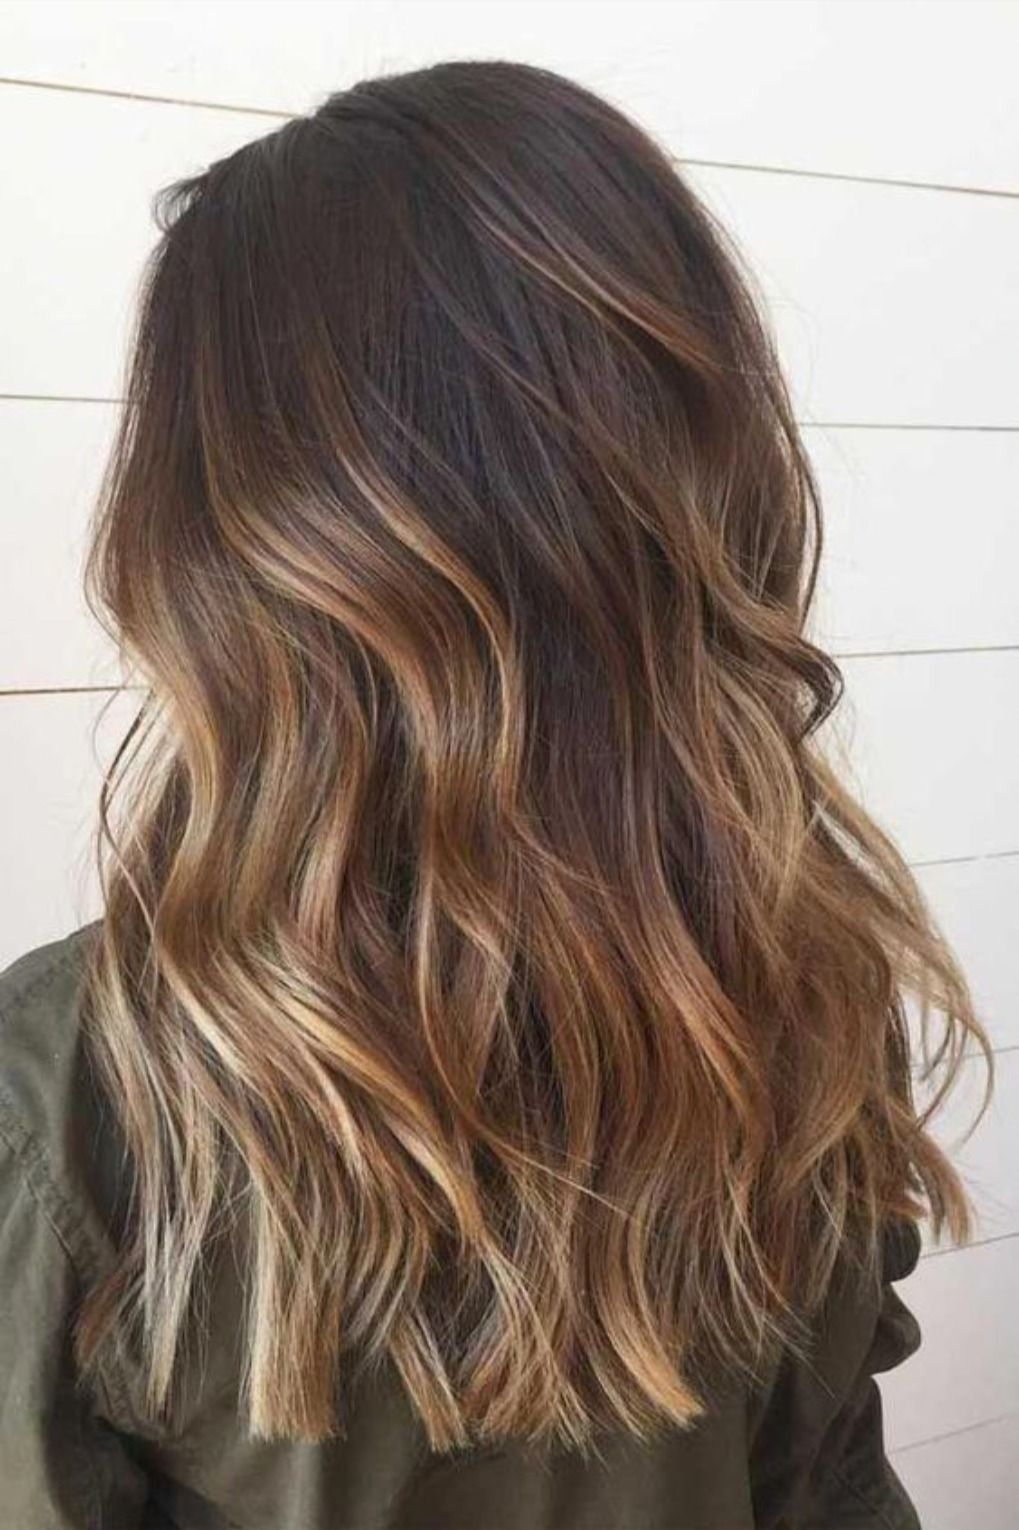 Caramel Drizzle is the delicious brunette hair col